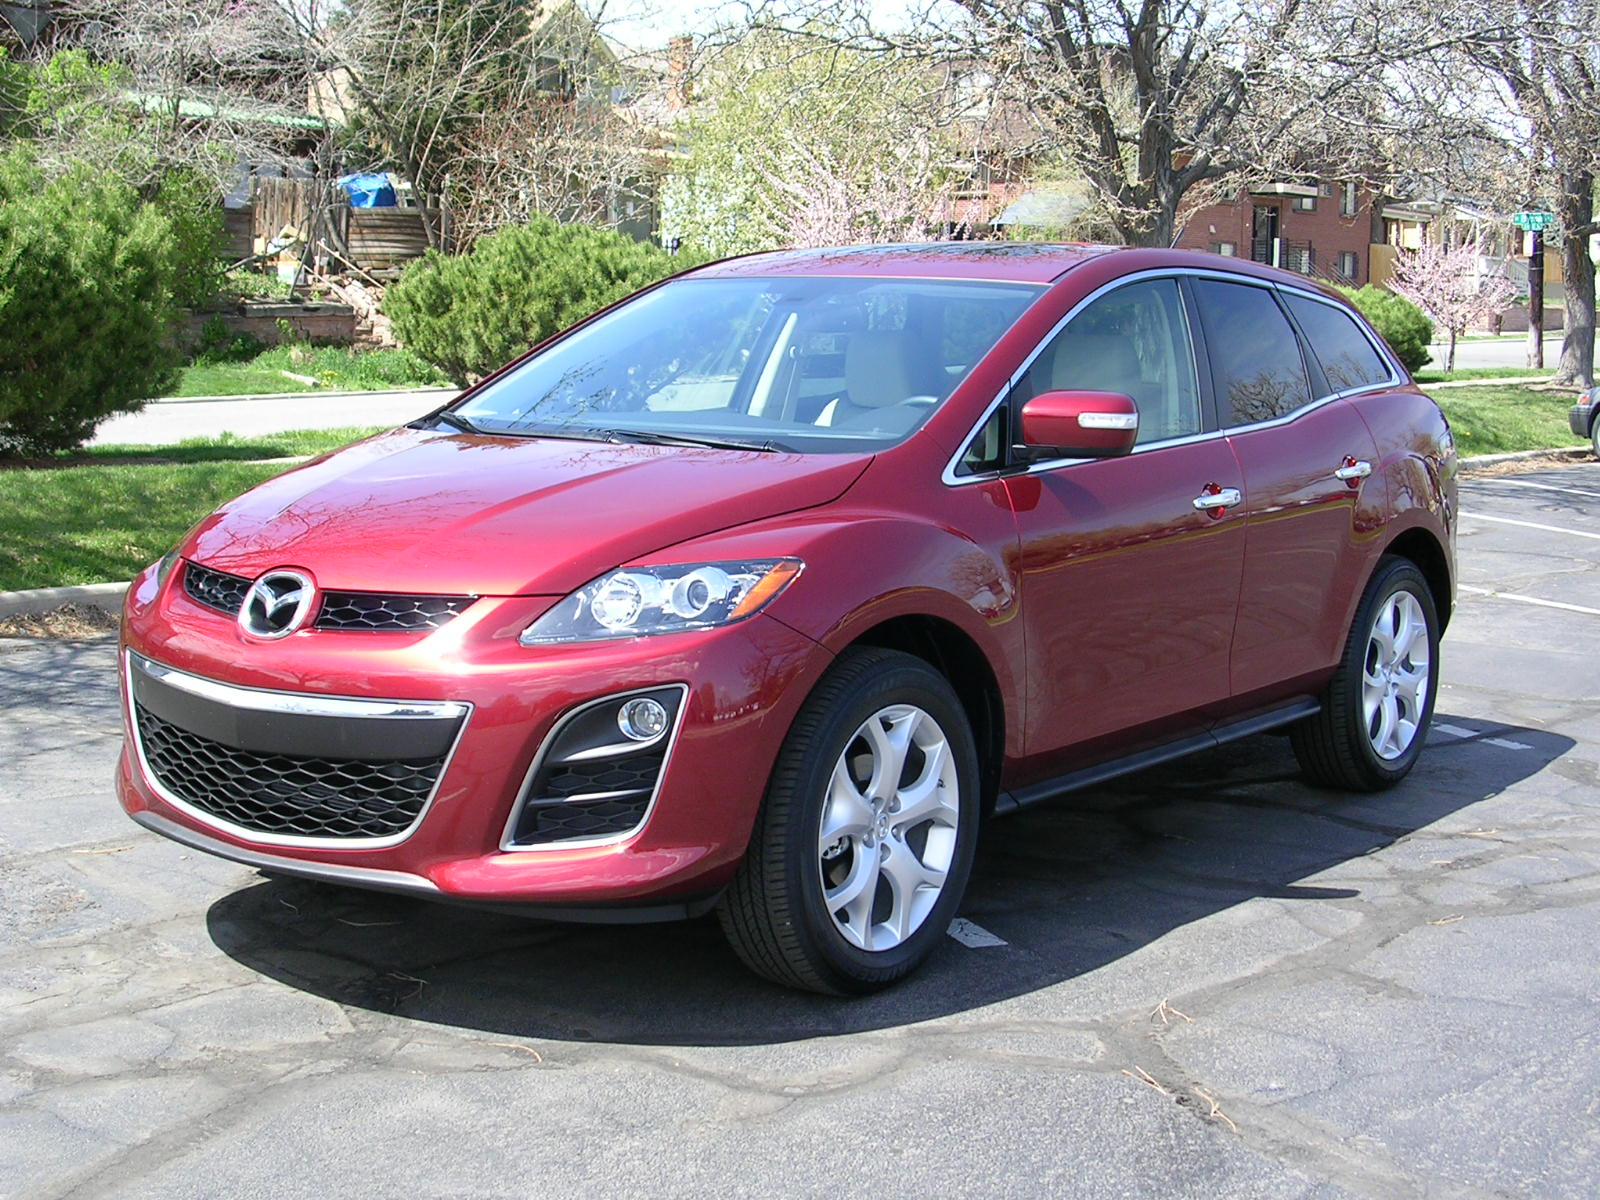 2010 mazda cx 7 grand touring awd fun sporty economical crossover denver auto solutions. Black Bedroom Furniture Sets. Home Design Ideas